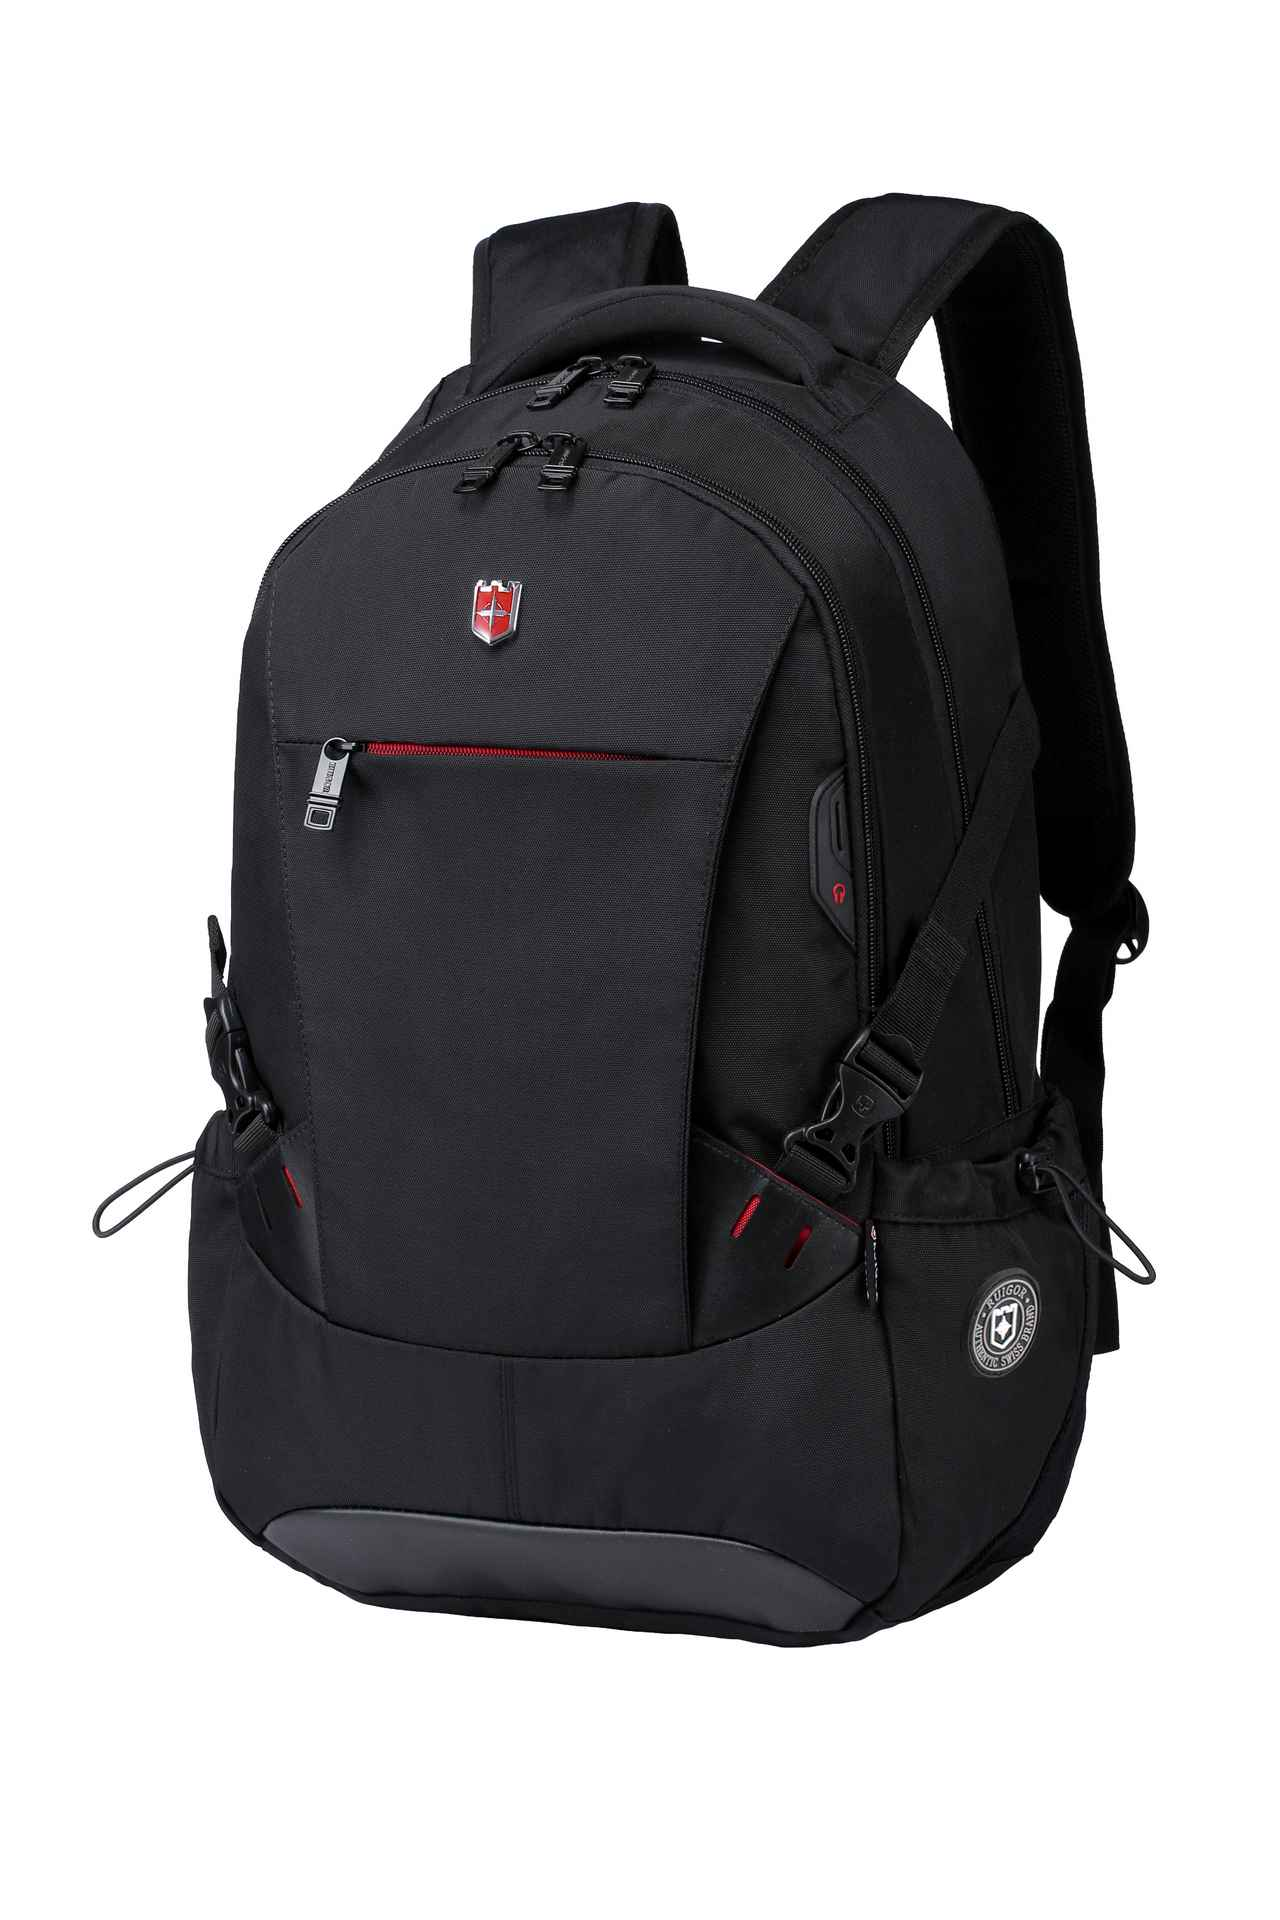 RUIGOR ICON 81 Laptop Backpack Black - Unique Style